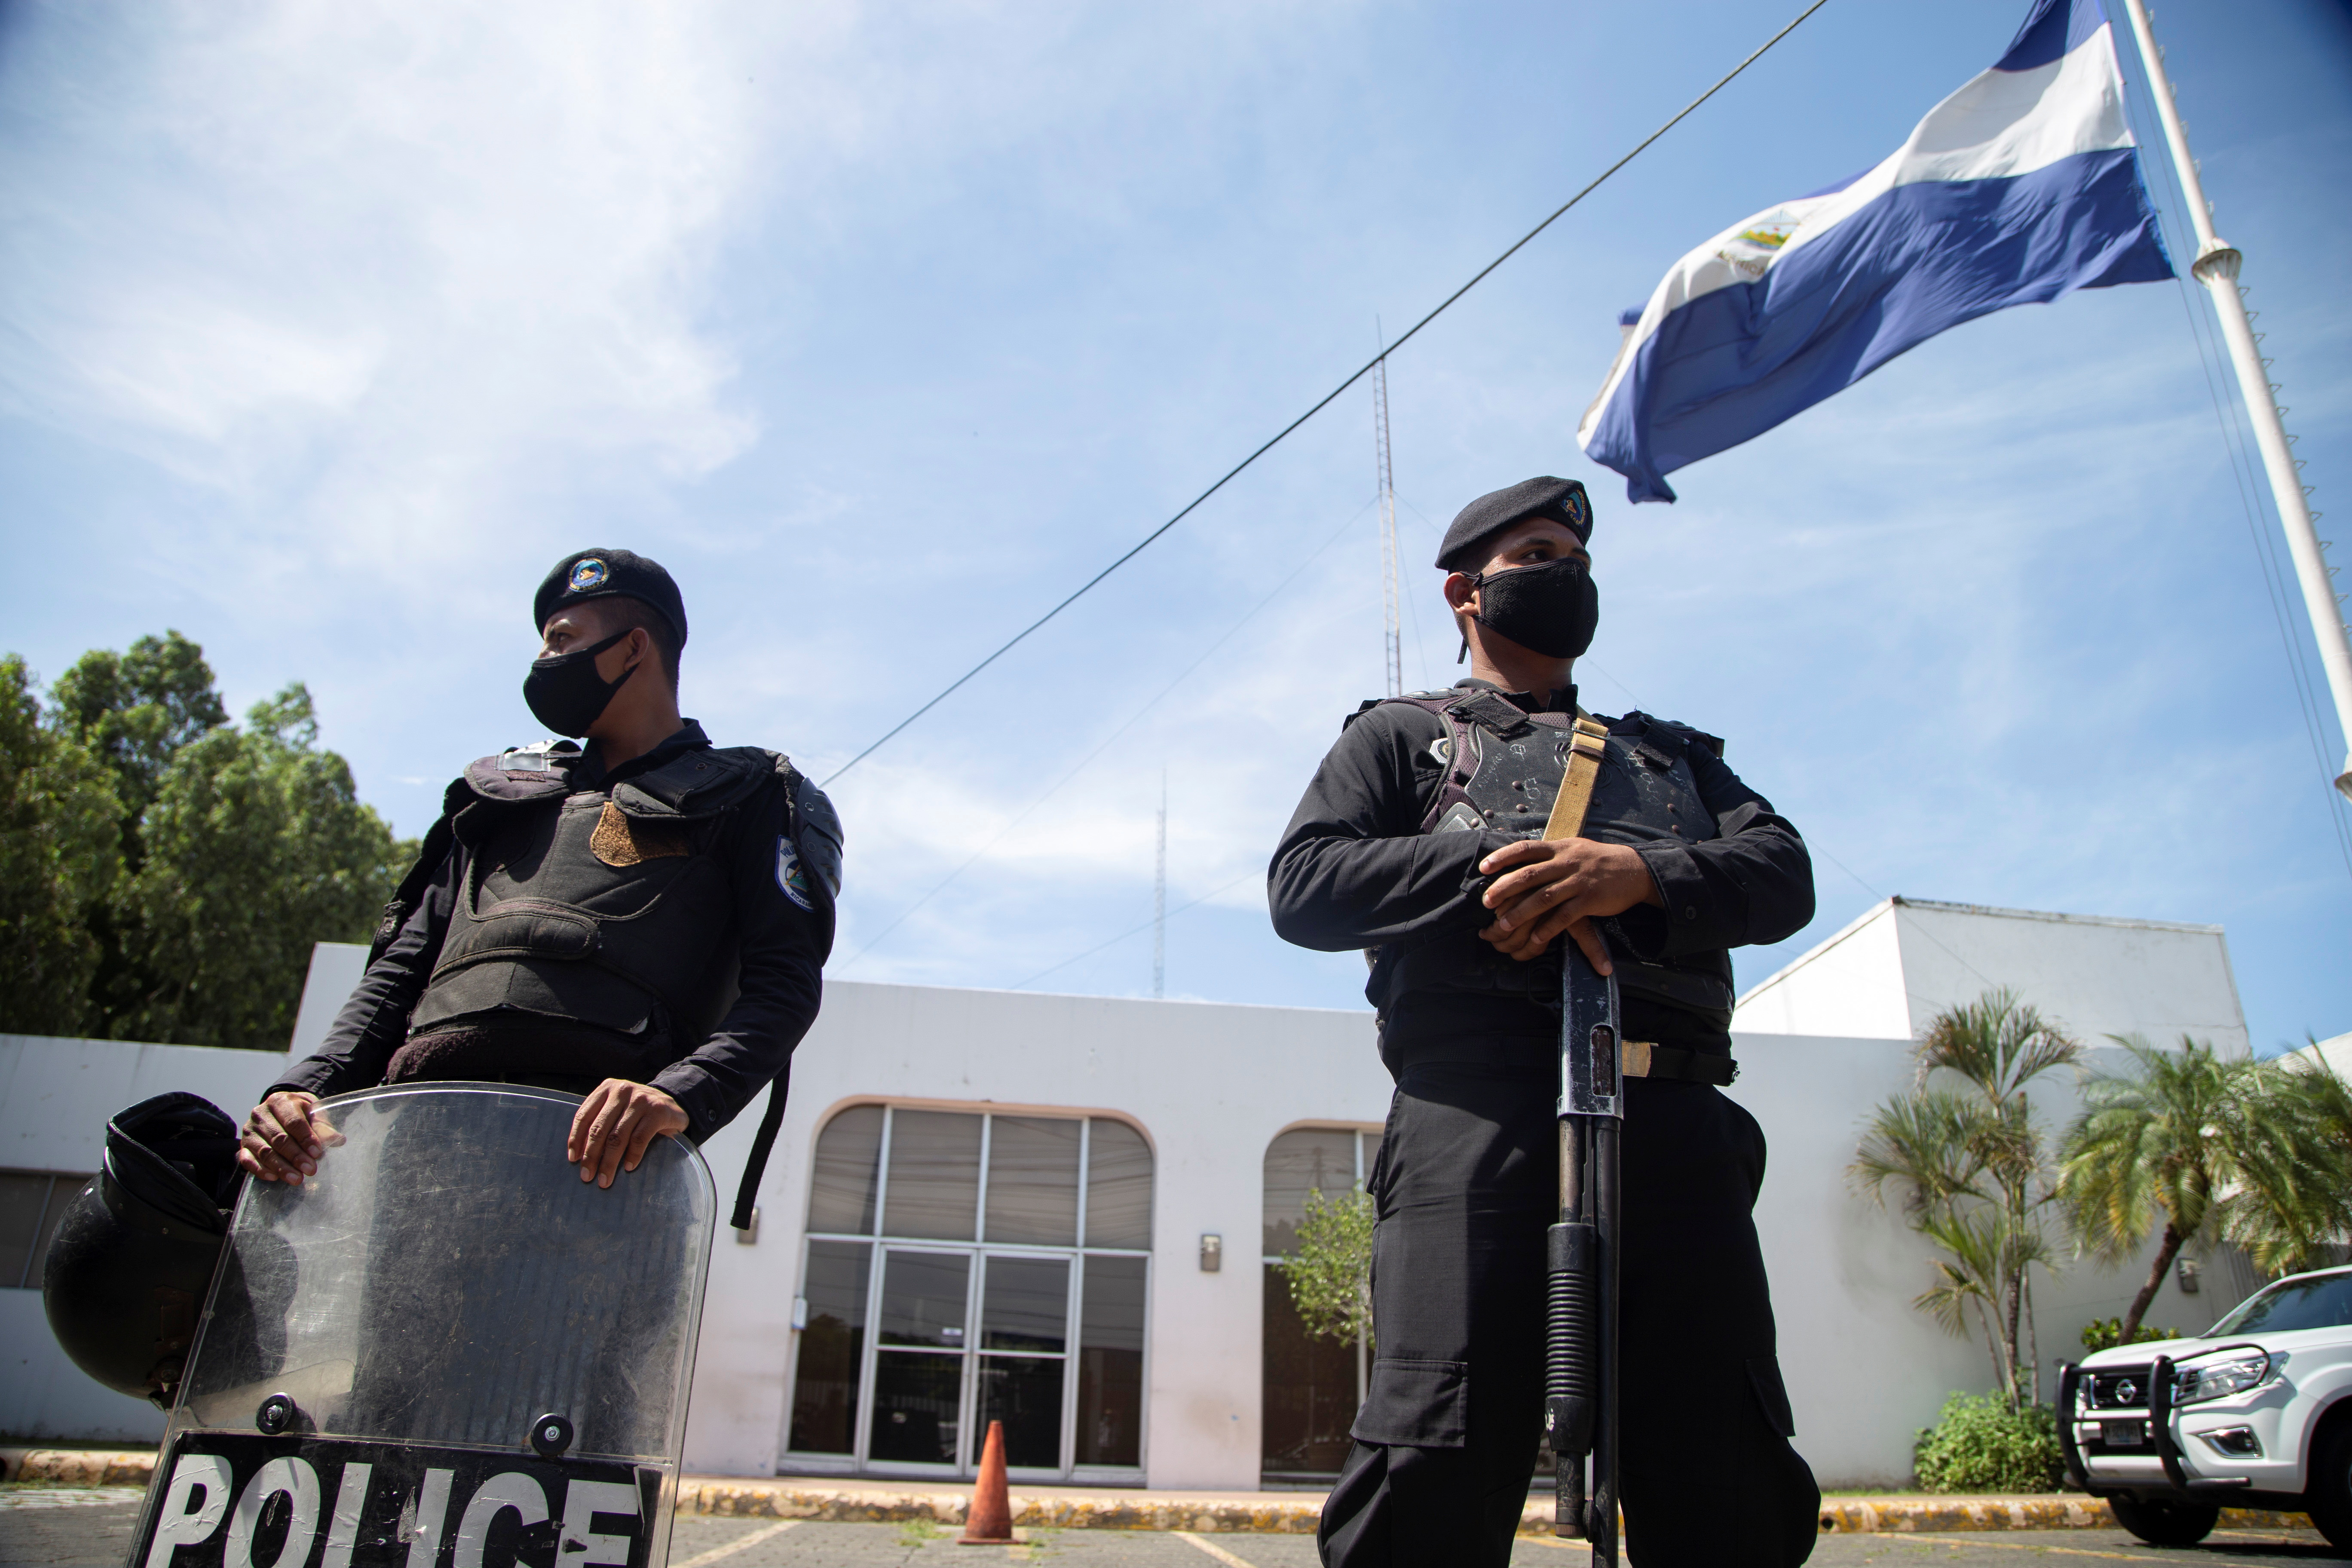 Nicaraguan police officers keep watch during a raid at the offices of La Prensa, the only national newspaper, after President Daniel Ortega's government opened customs fraud and money laundering investigations against the publication, in Managua, Nicaragua August 13, 2021. REUTERS/Maynor Valenzuela